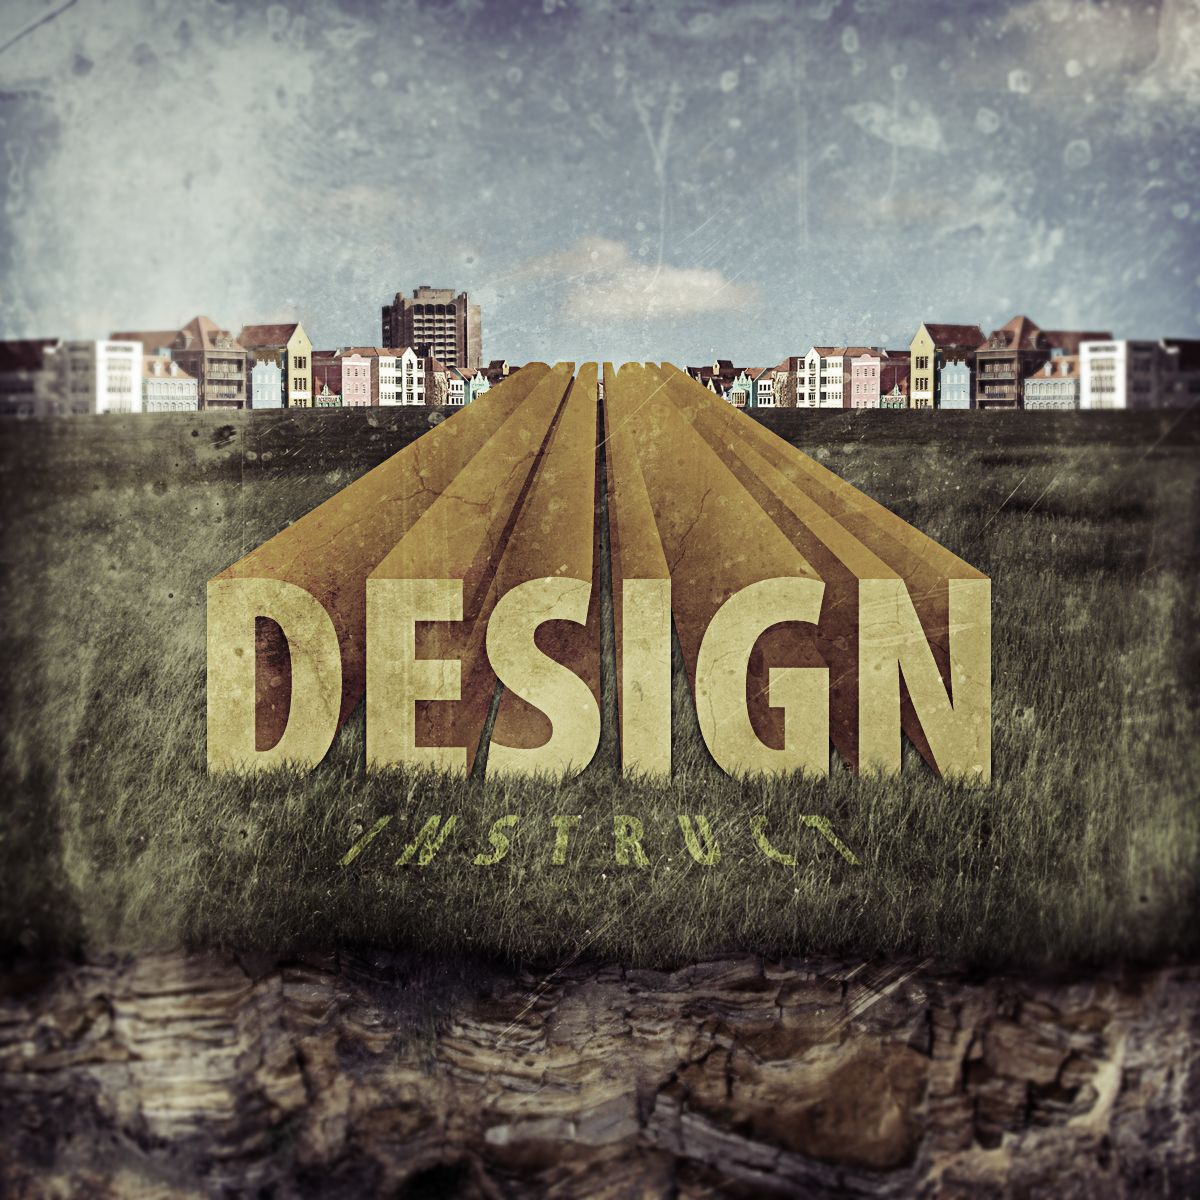 TUTORIAL Create Stunning 3D Text in a Grungy Landscape